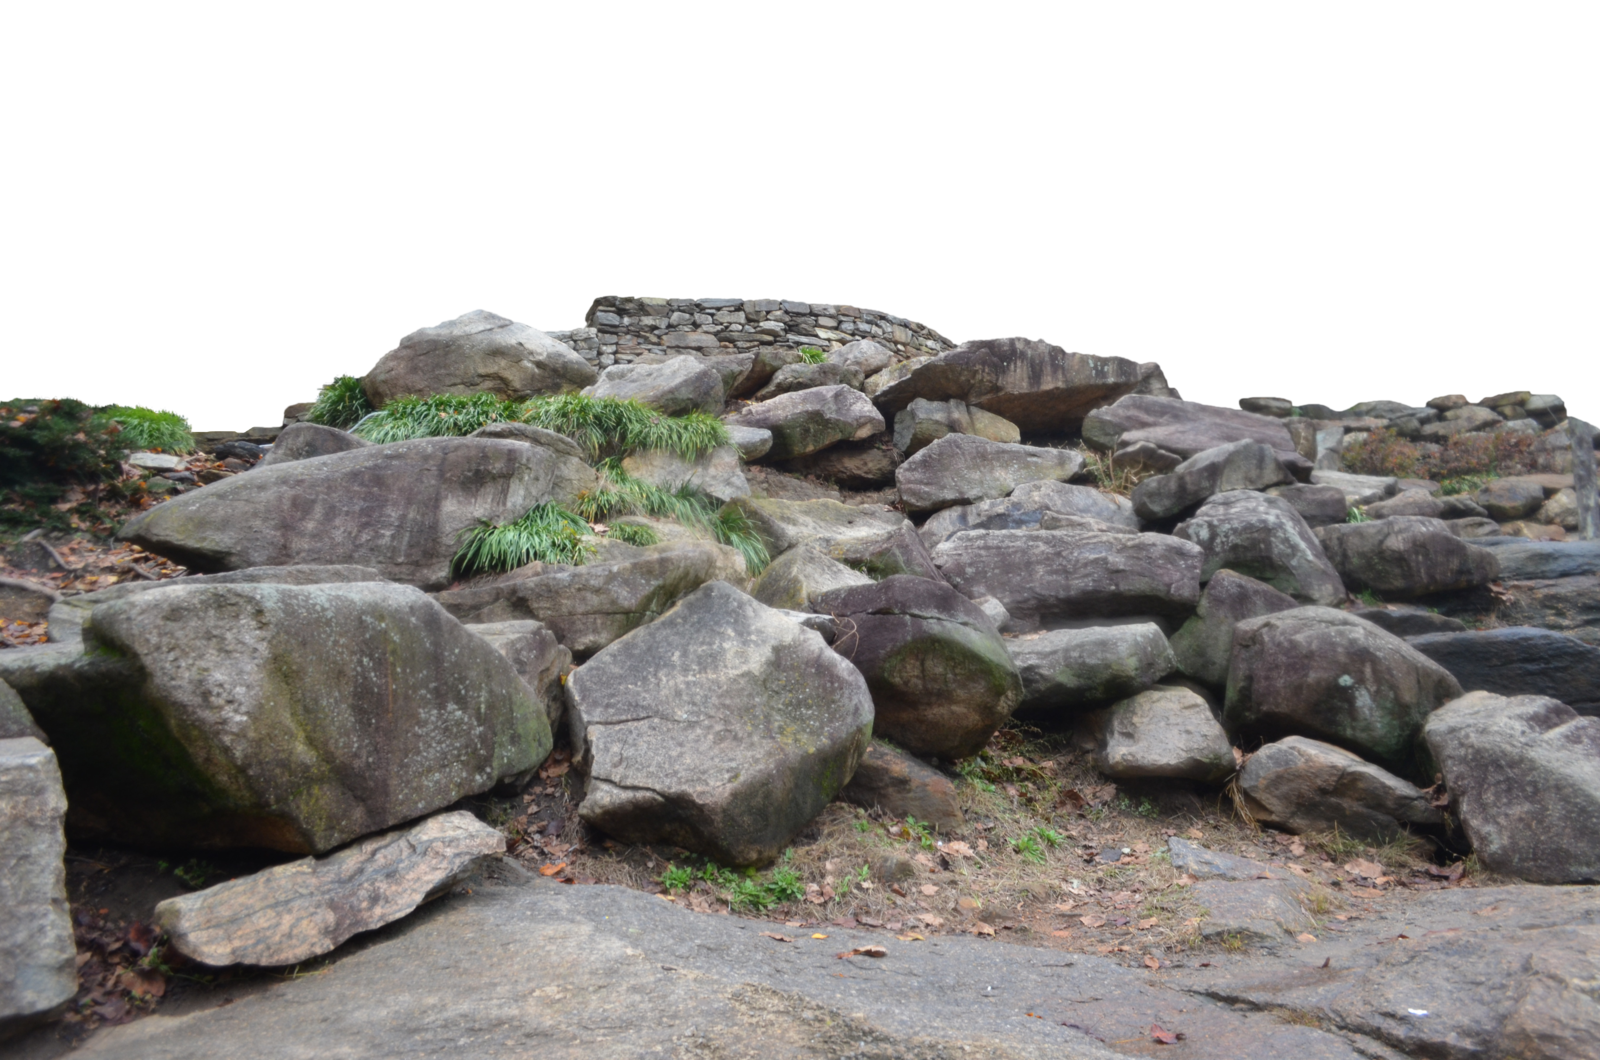 PNG Stone - 61079